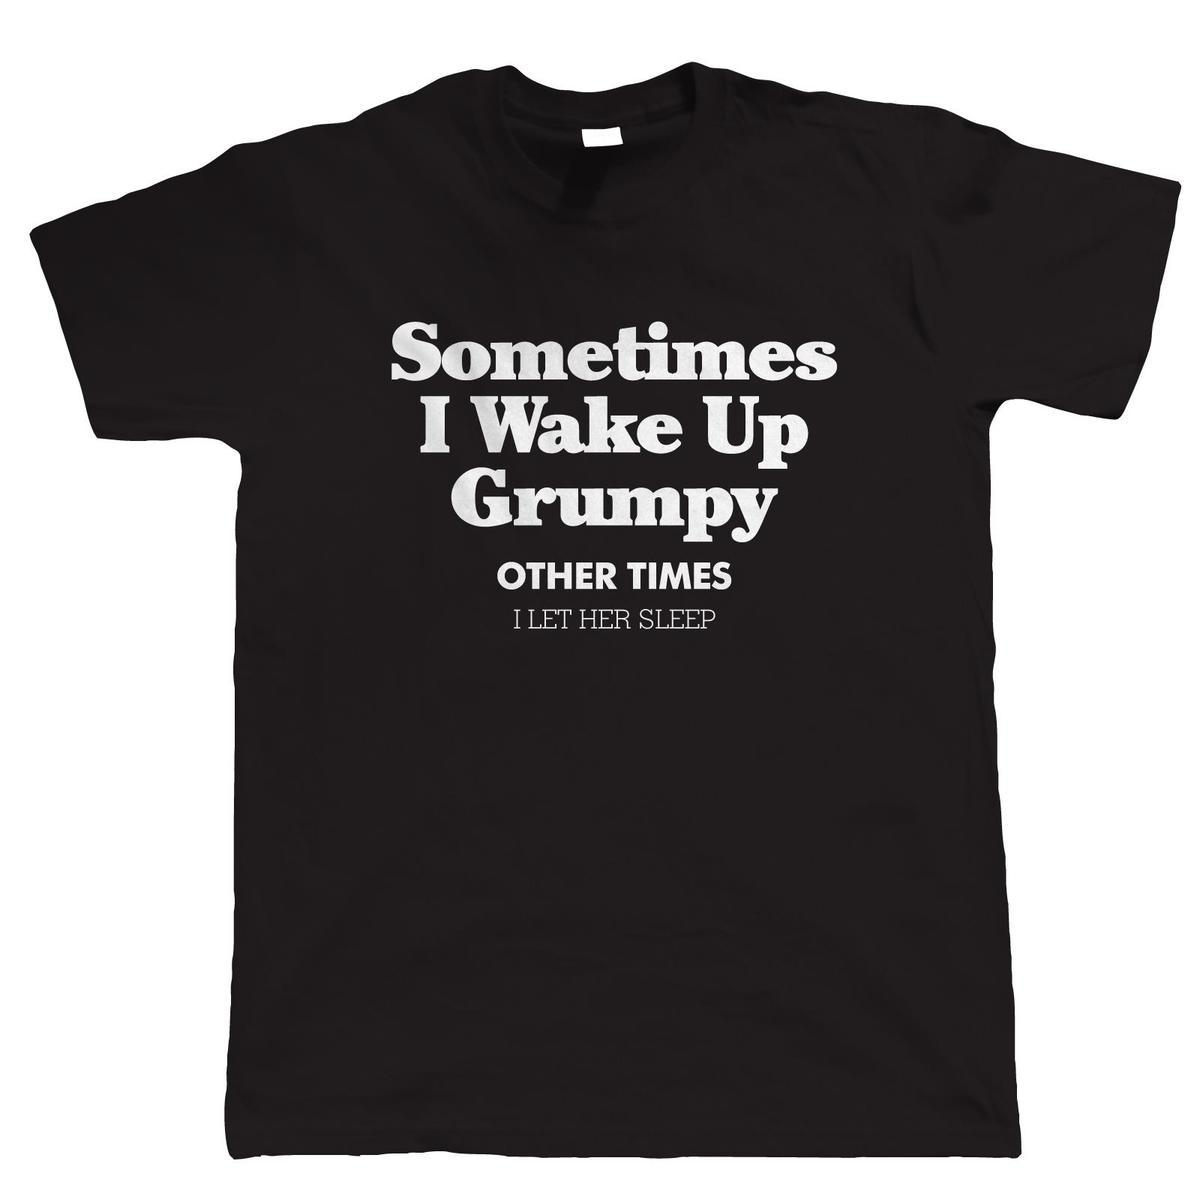 Sometimes I Wake Up Grumpy Mens Funny T Shirt Gift For Him Birthday Shirts And Buy Cool From Lijian047 1208